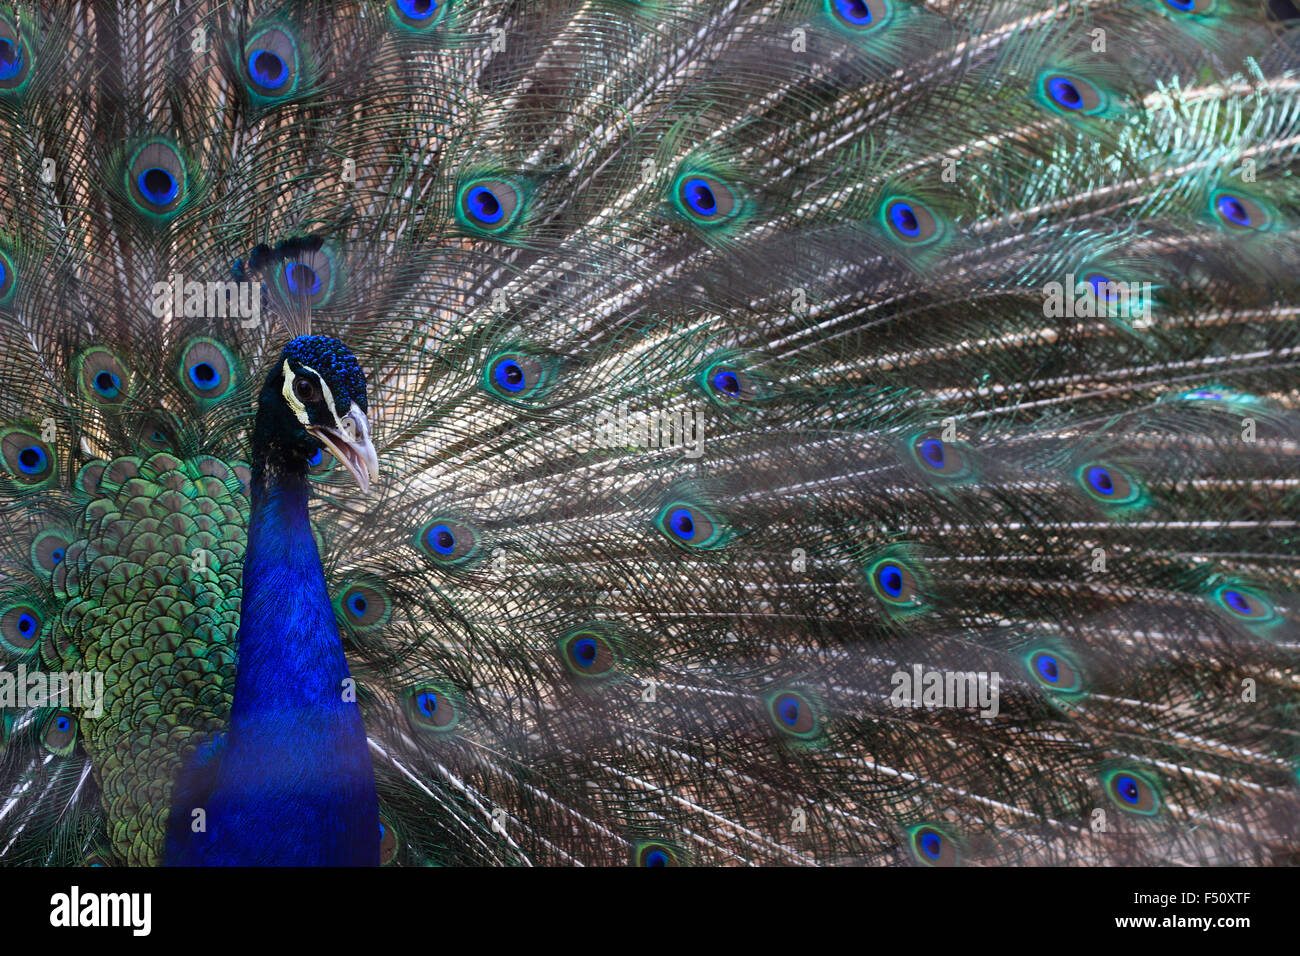 Jakarta, Indonesia. 25th Oct, 2015. A blue peafowl (Pavo cristatus) spreads his feathers to attract female peacocks - Stock Image